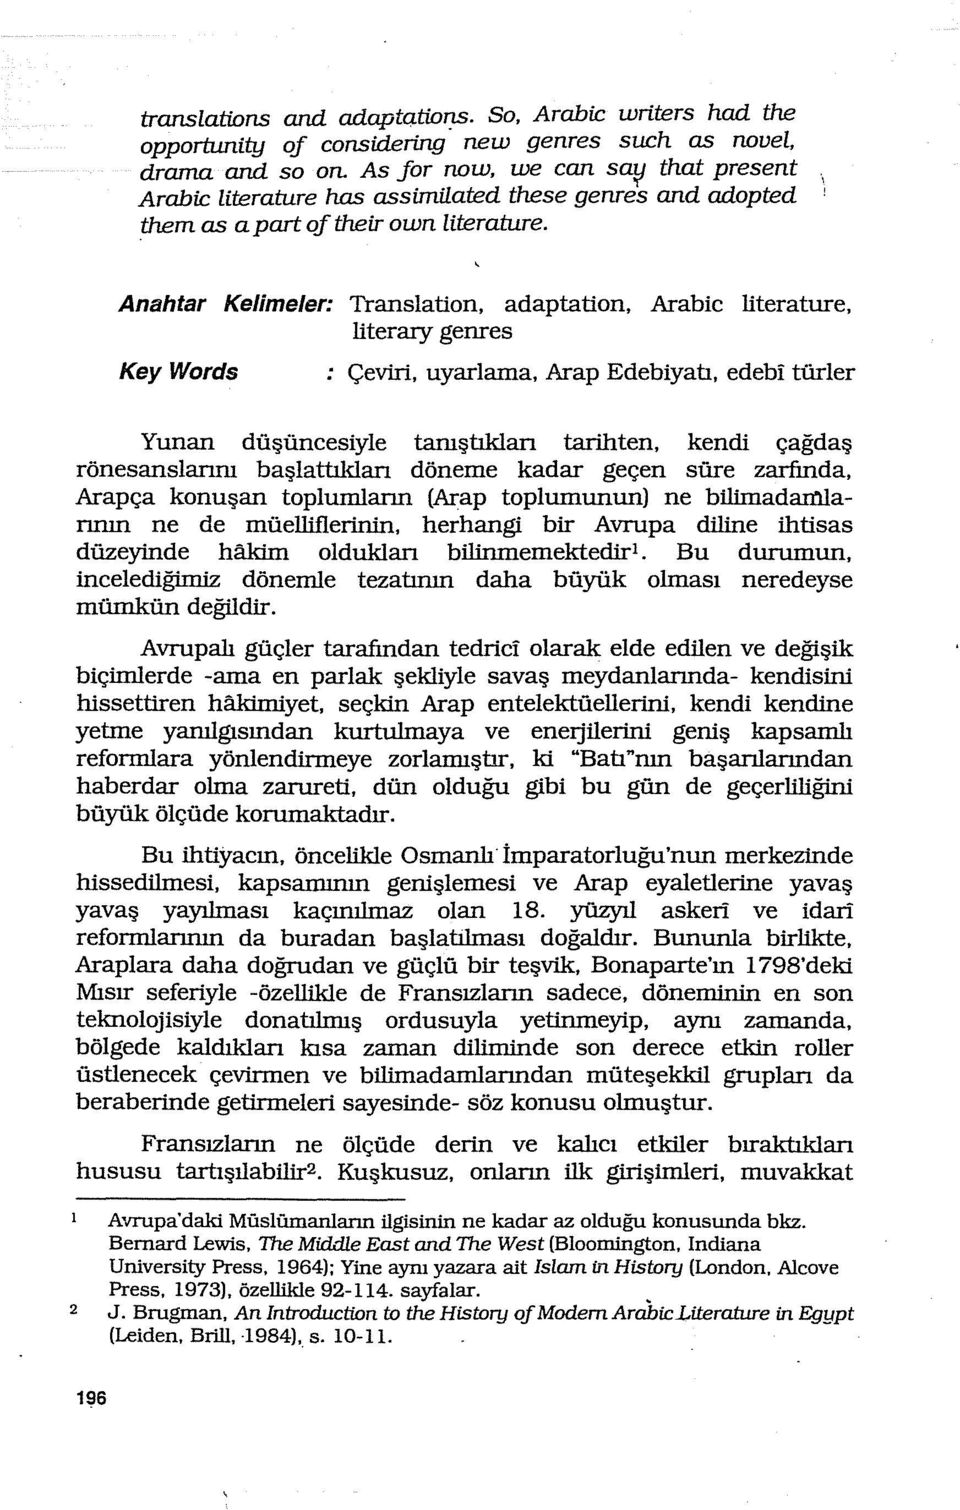 Anahtar Kelime/er: Translation, adaptation, Arabic literature, literary genres Key Words Çeviri, uyarlanıa, Arap Edebiyatı, edebi türler Yunan düşüncesiyle tanıştıklan tarihten, kendi çağdaş